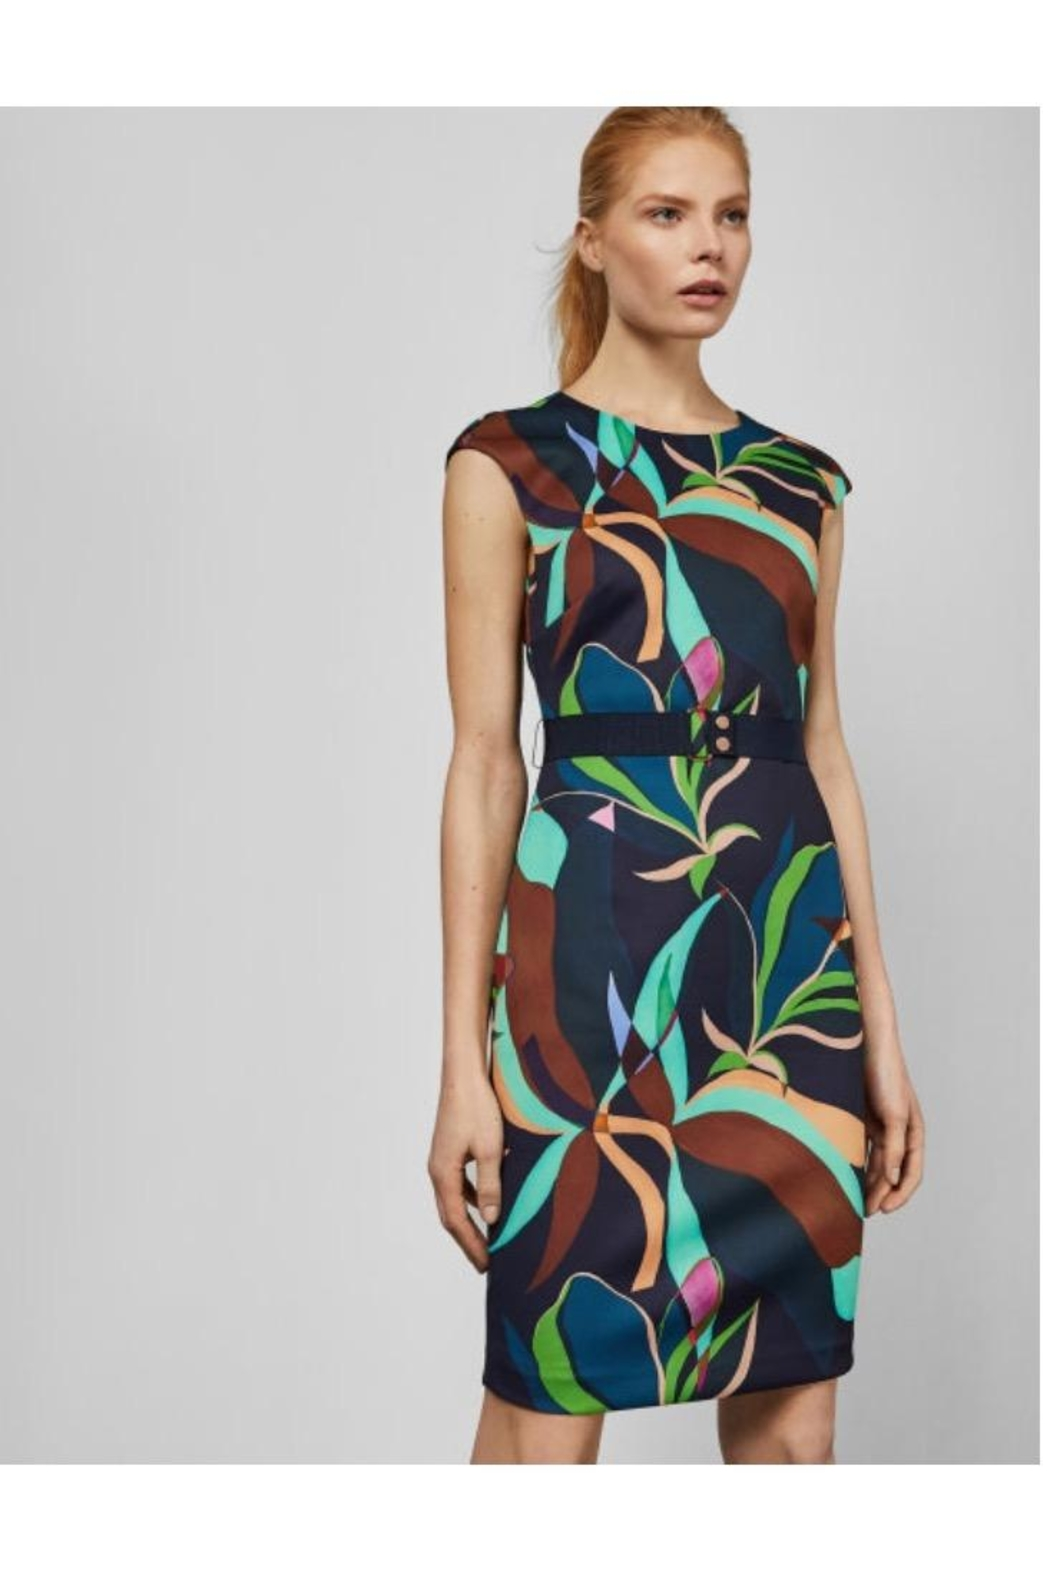 84bd2001c406 Ted Baker Printed Fitted Dress from Wallingford by The Dressing Room ...